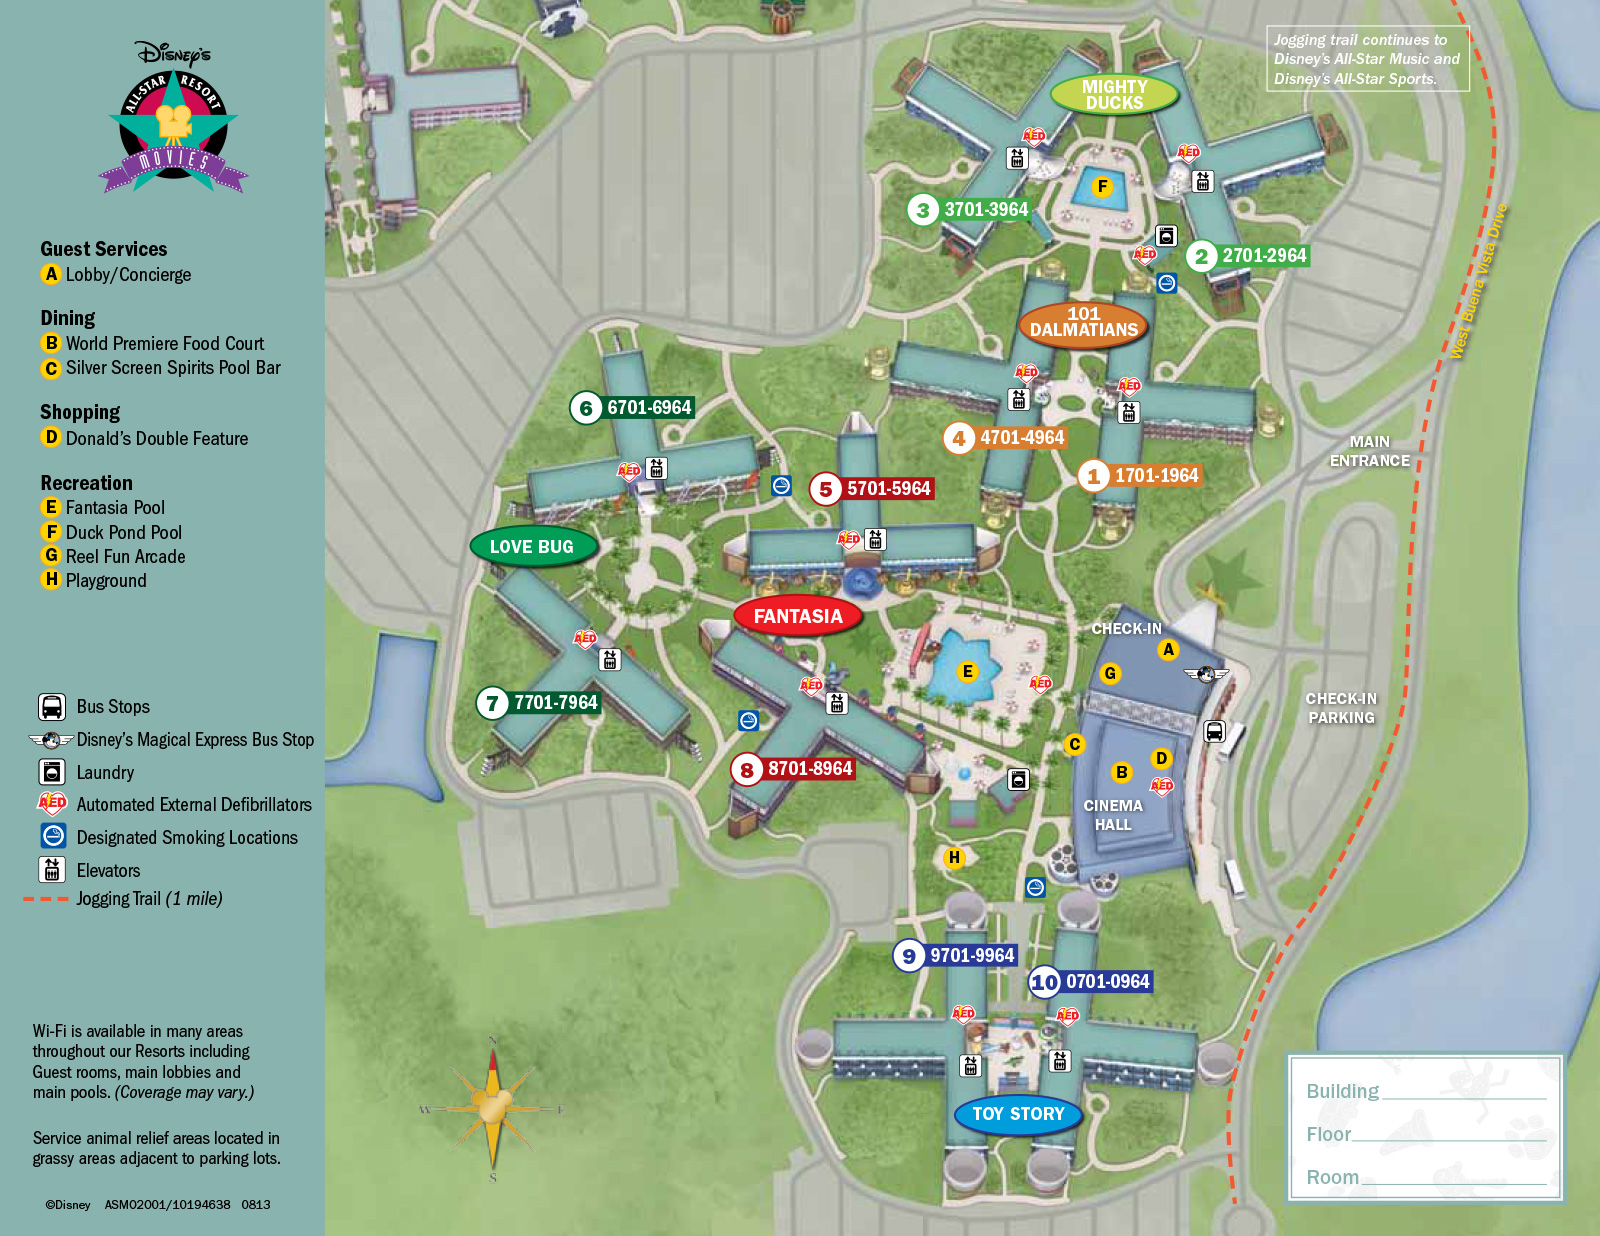 New look 2013 Resort Hotel maps - Photo 1 of 37